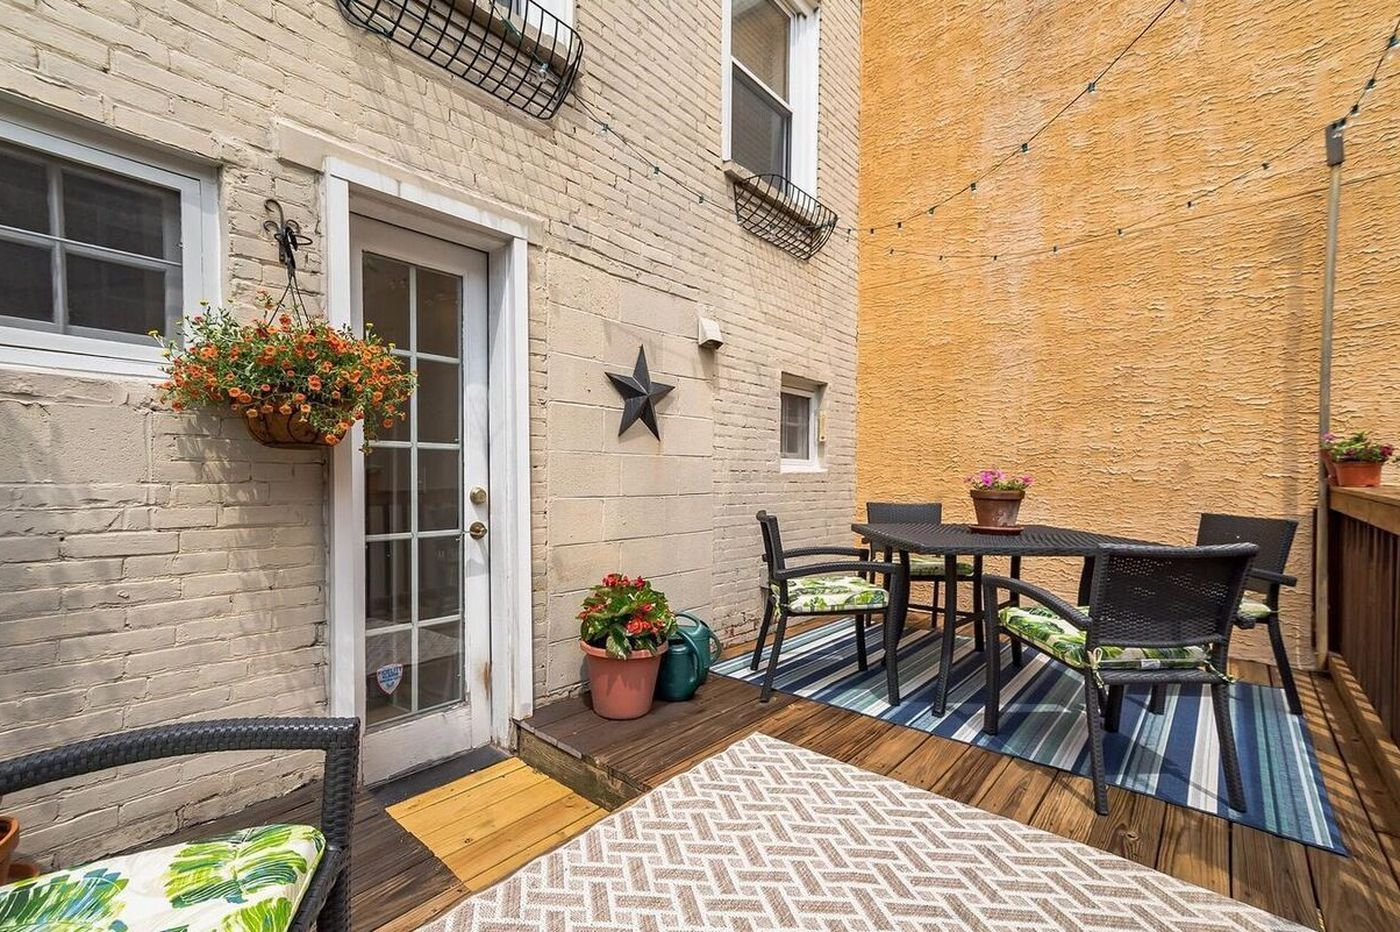 On the market: Two-bedroom Fitler Square townhouse for $525,000